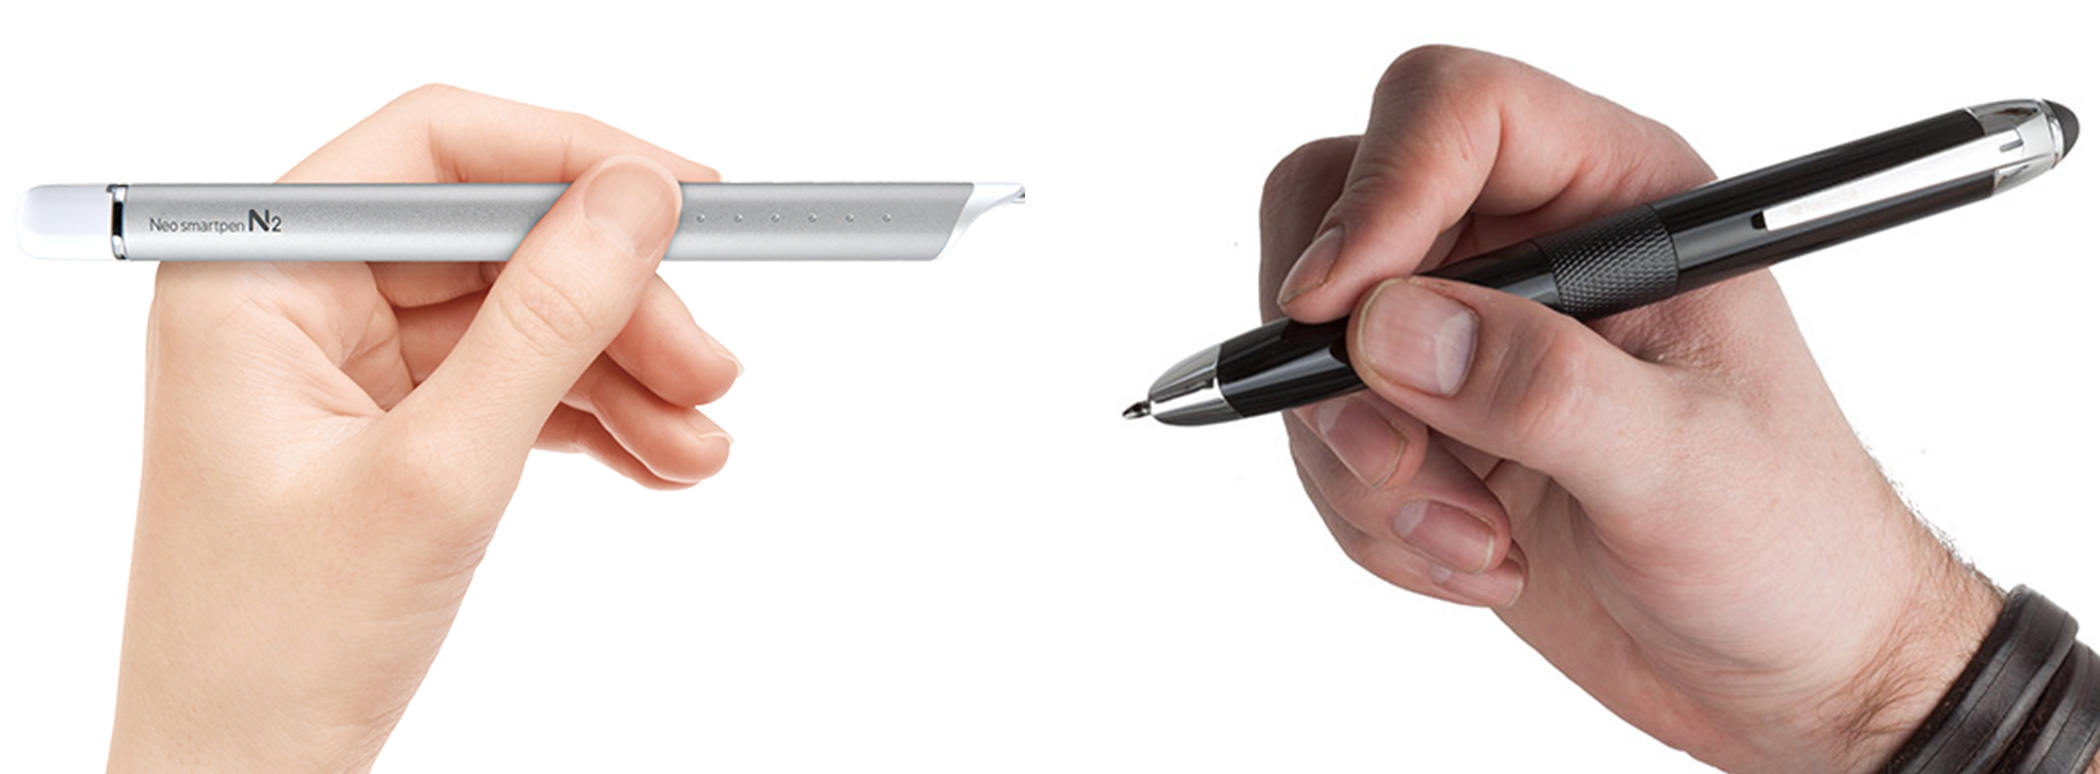 Neo vs Livescribe